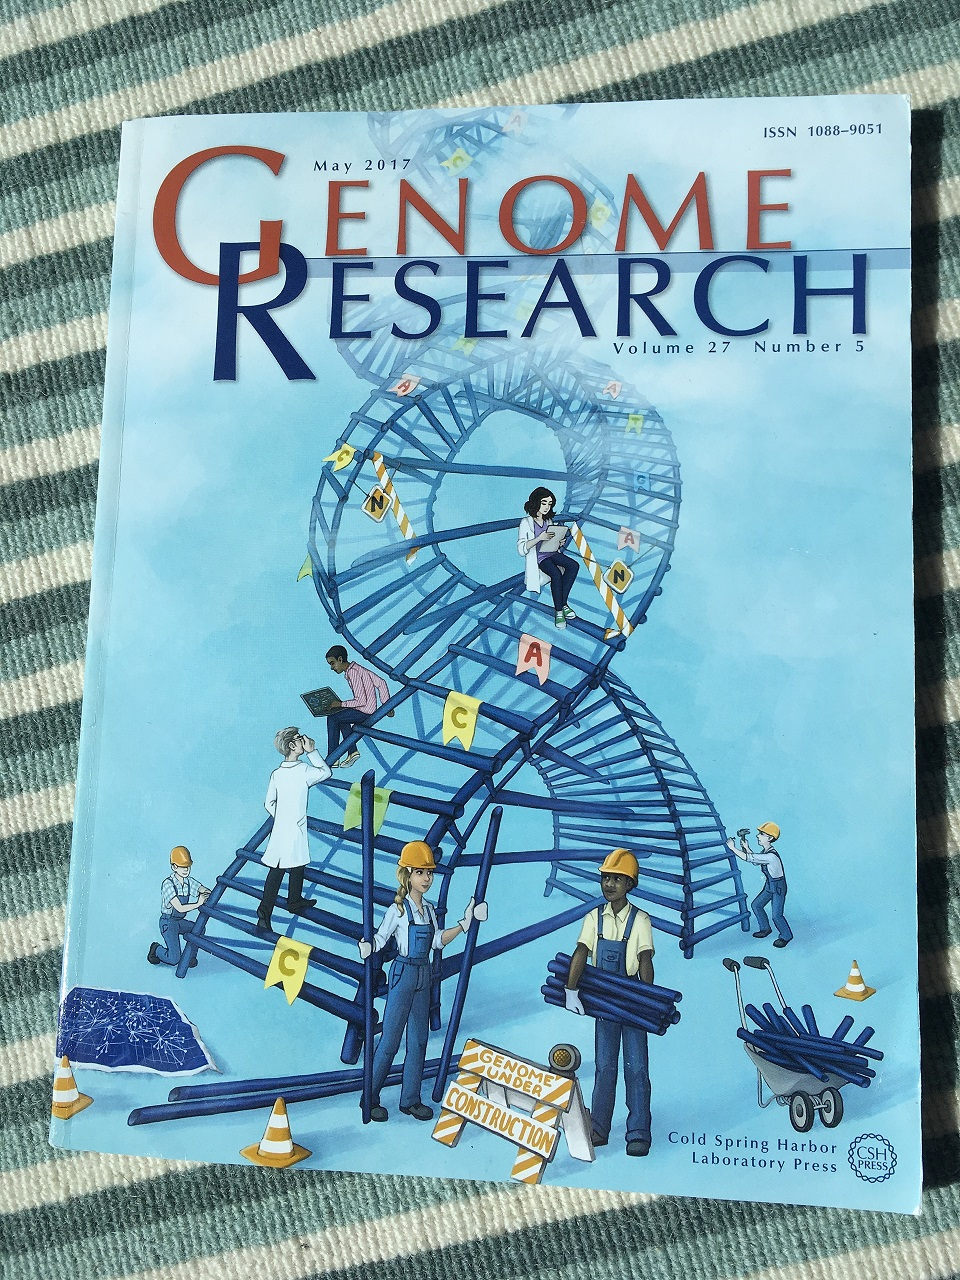 Genome Research.jpg